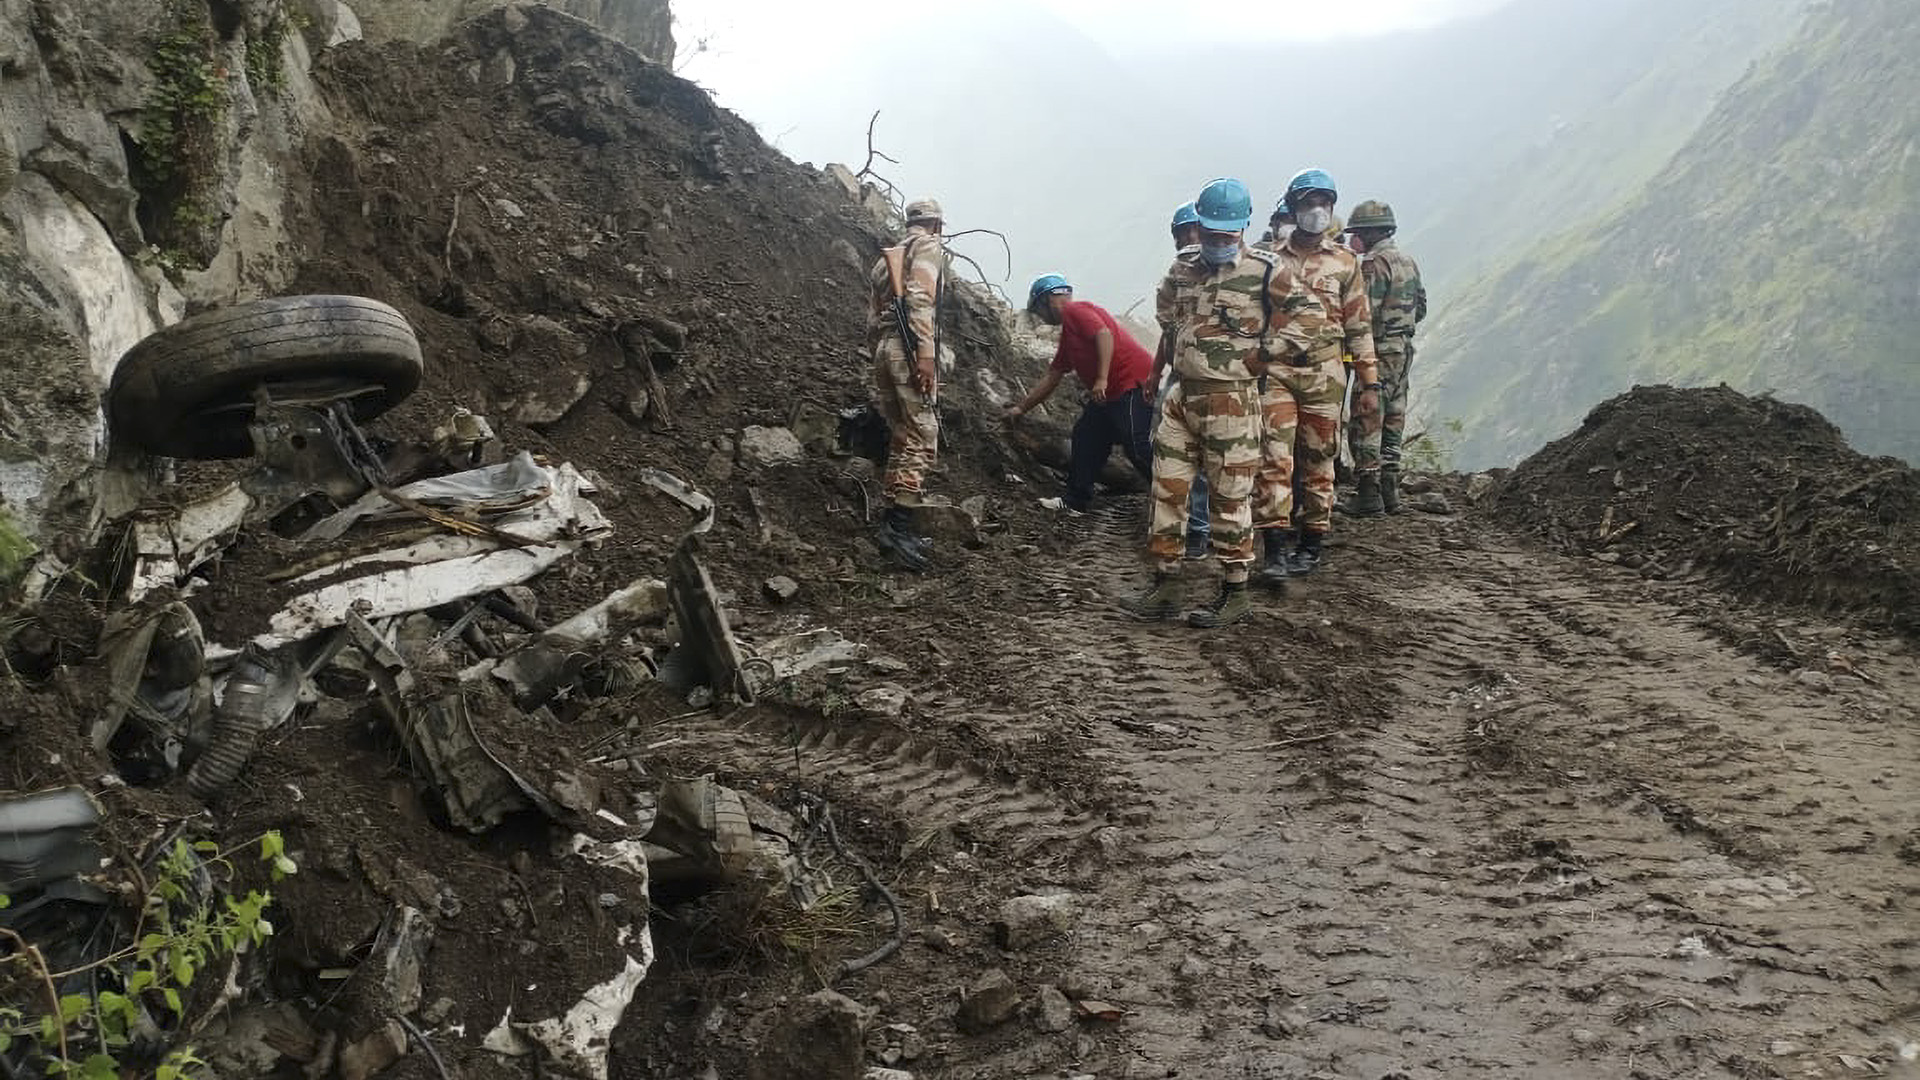 Landslide Horror: Four Dead And More Than 50 Feared Crushed In Massive Avalanche